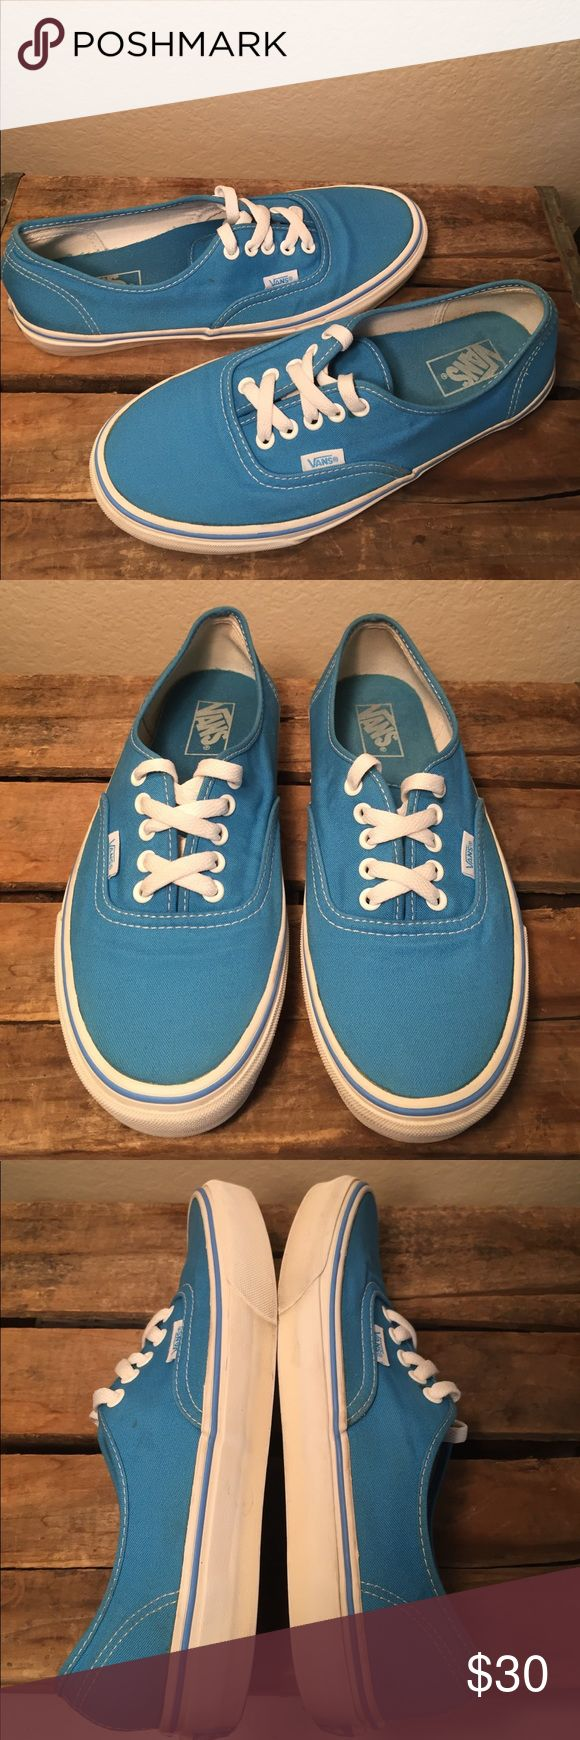 Vans Teal Blue Women's Size 9.5/Men's Size 8. Preowned and in great condition please view all 8 photos. I did take a couple of some very lil marks on shoes that to be honest art not real noticeable. If those don't bother you these will be a great pair for you😊. No holes and no fading or pulling away from rubber trim. Vans Off The Wall on heels faded a tad not bad. Vans Shoes Sneakers